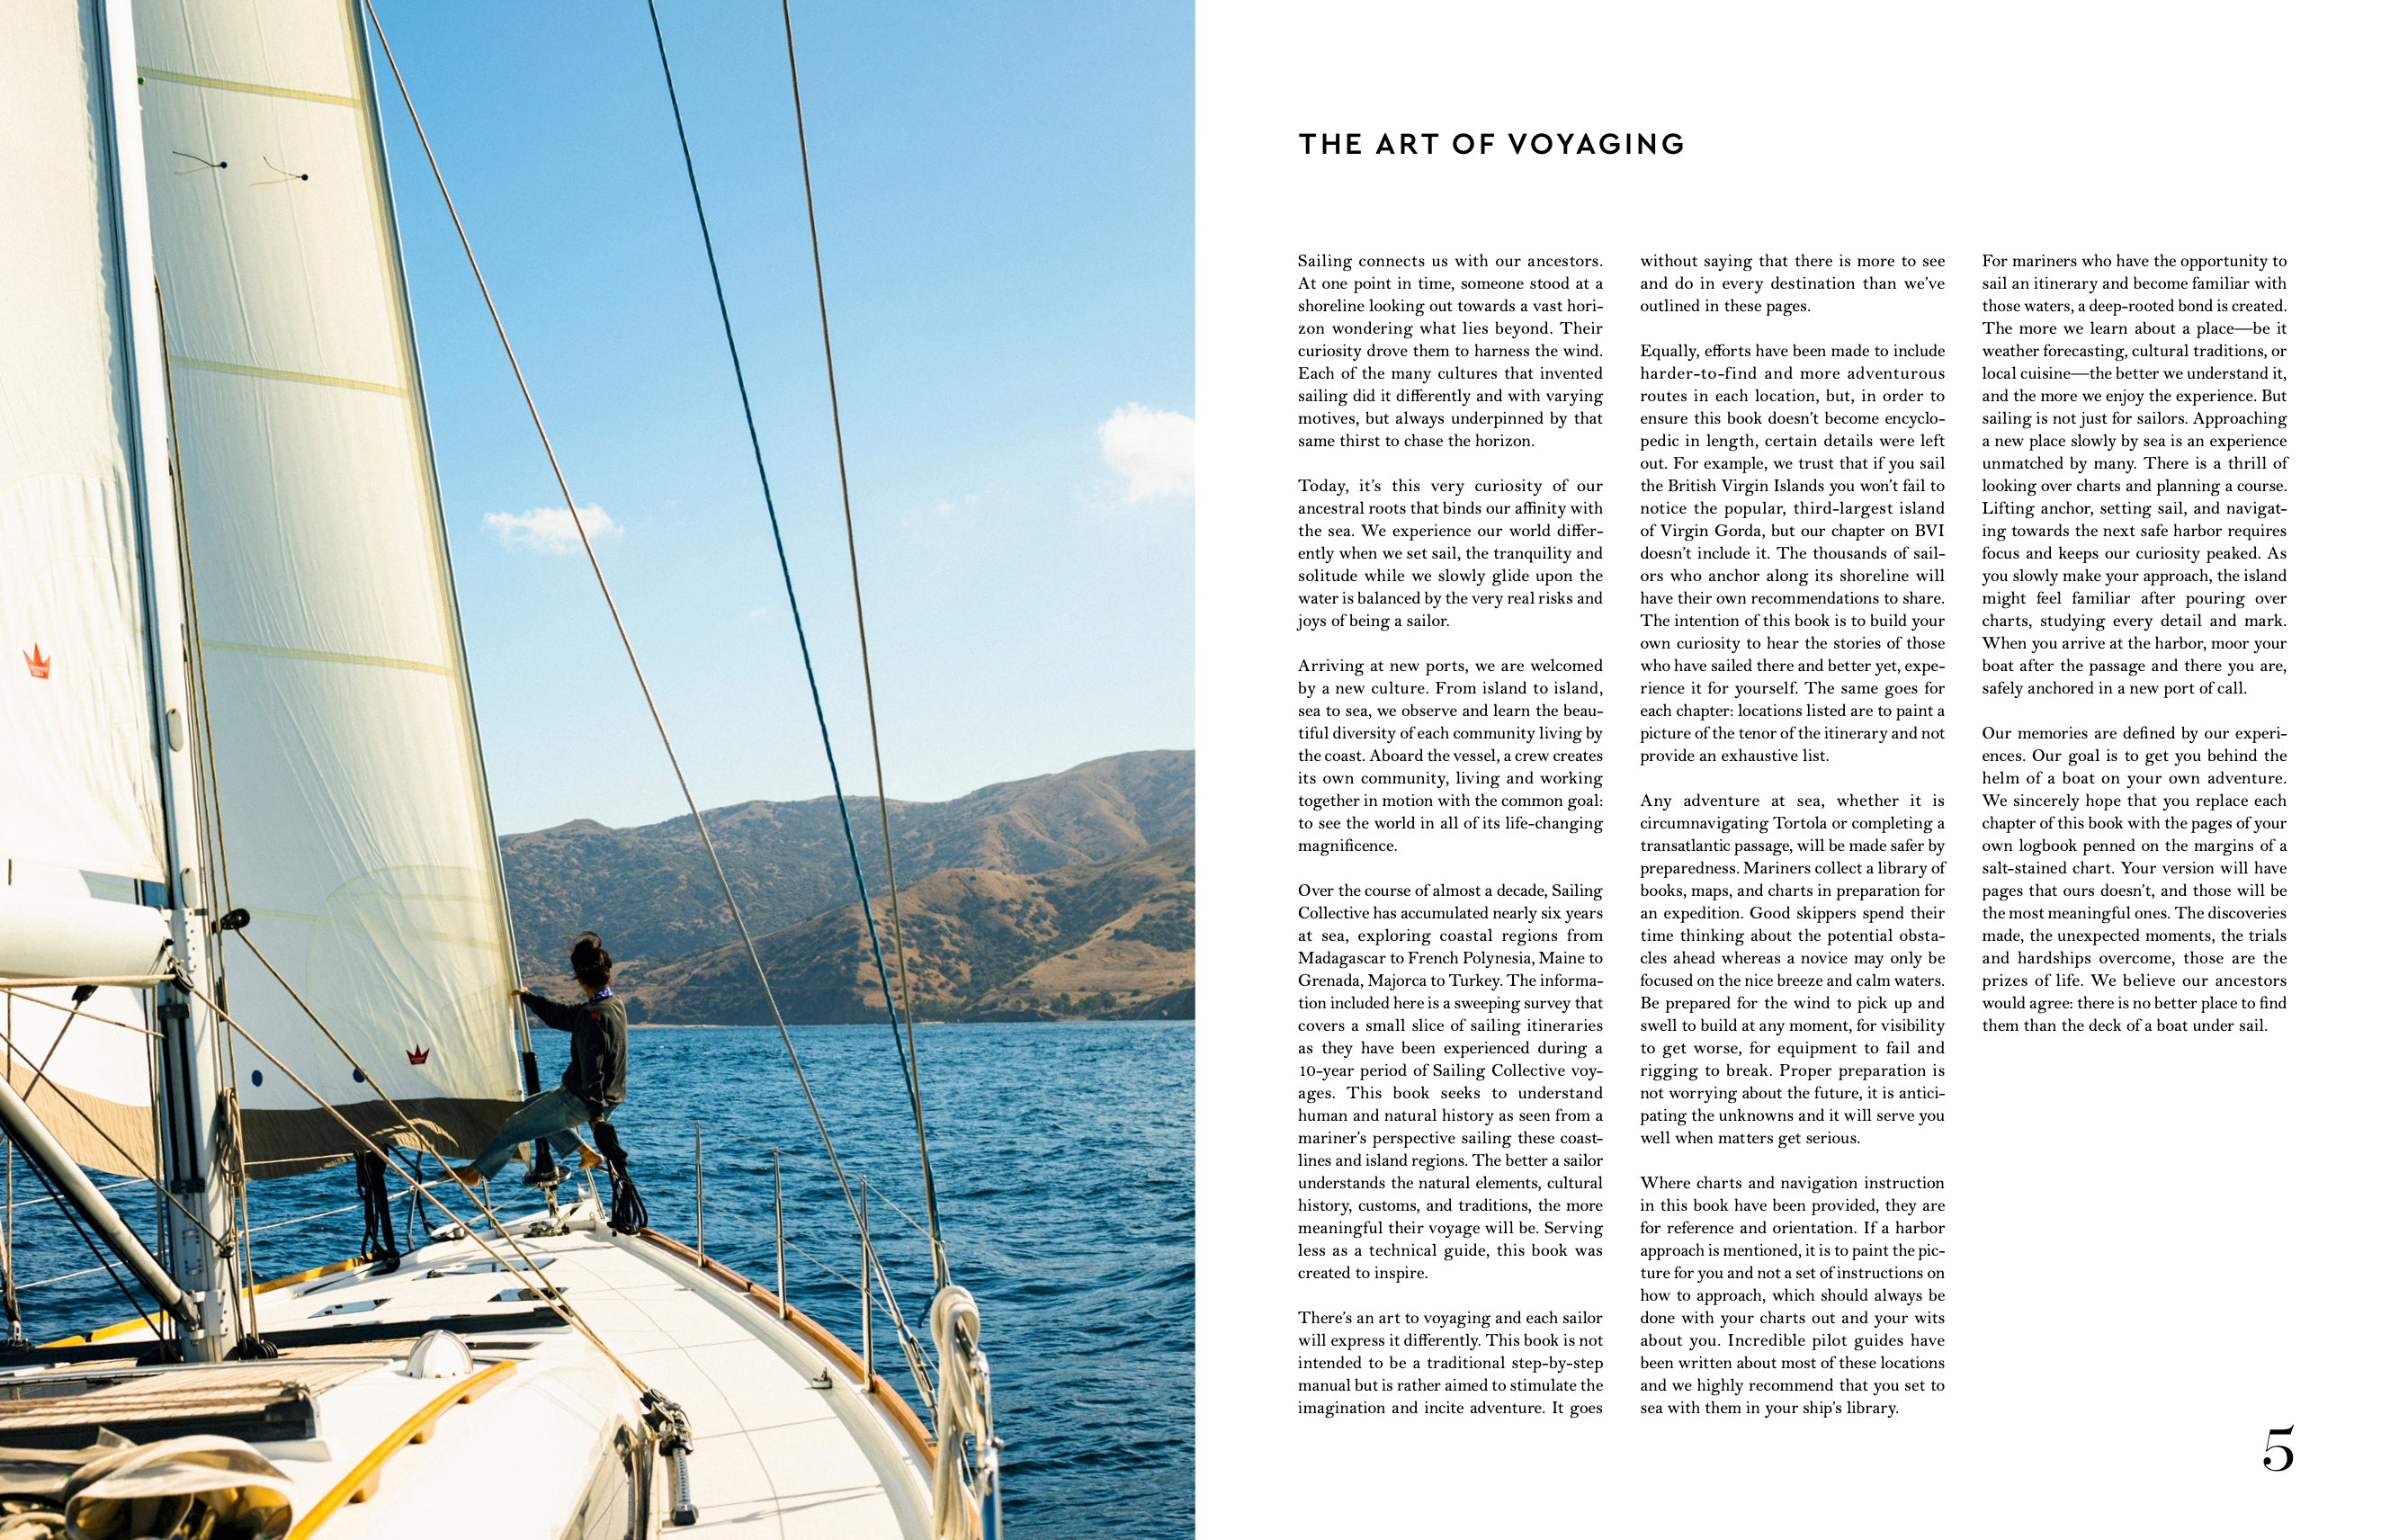 Sailing The Seas: A Voyagers Guide To Oceanic Getaways